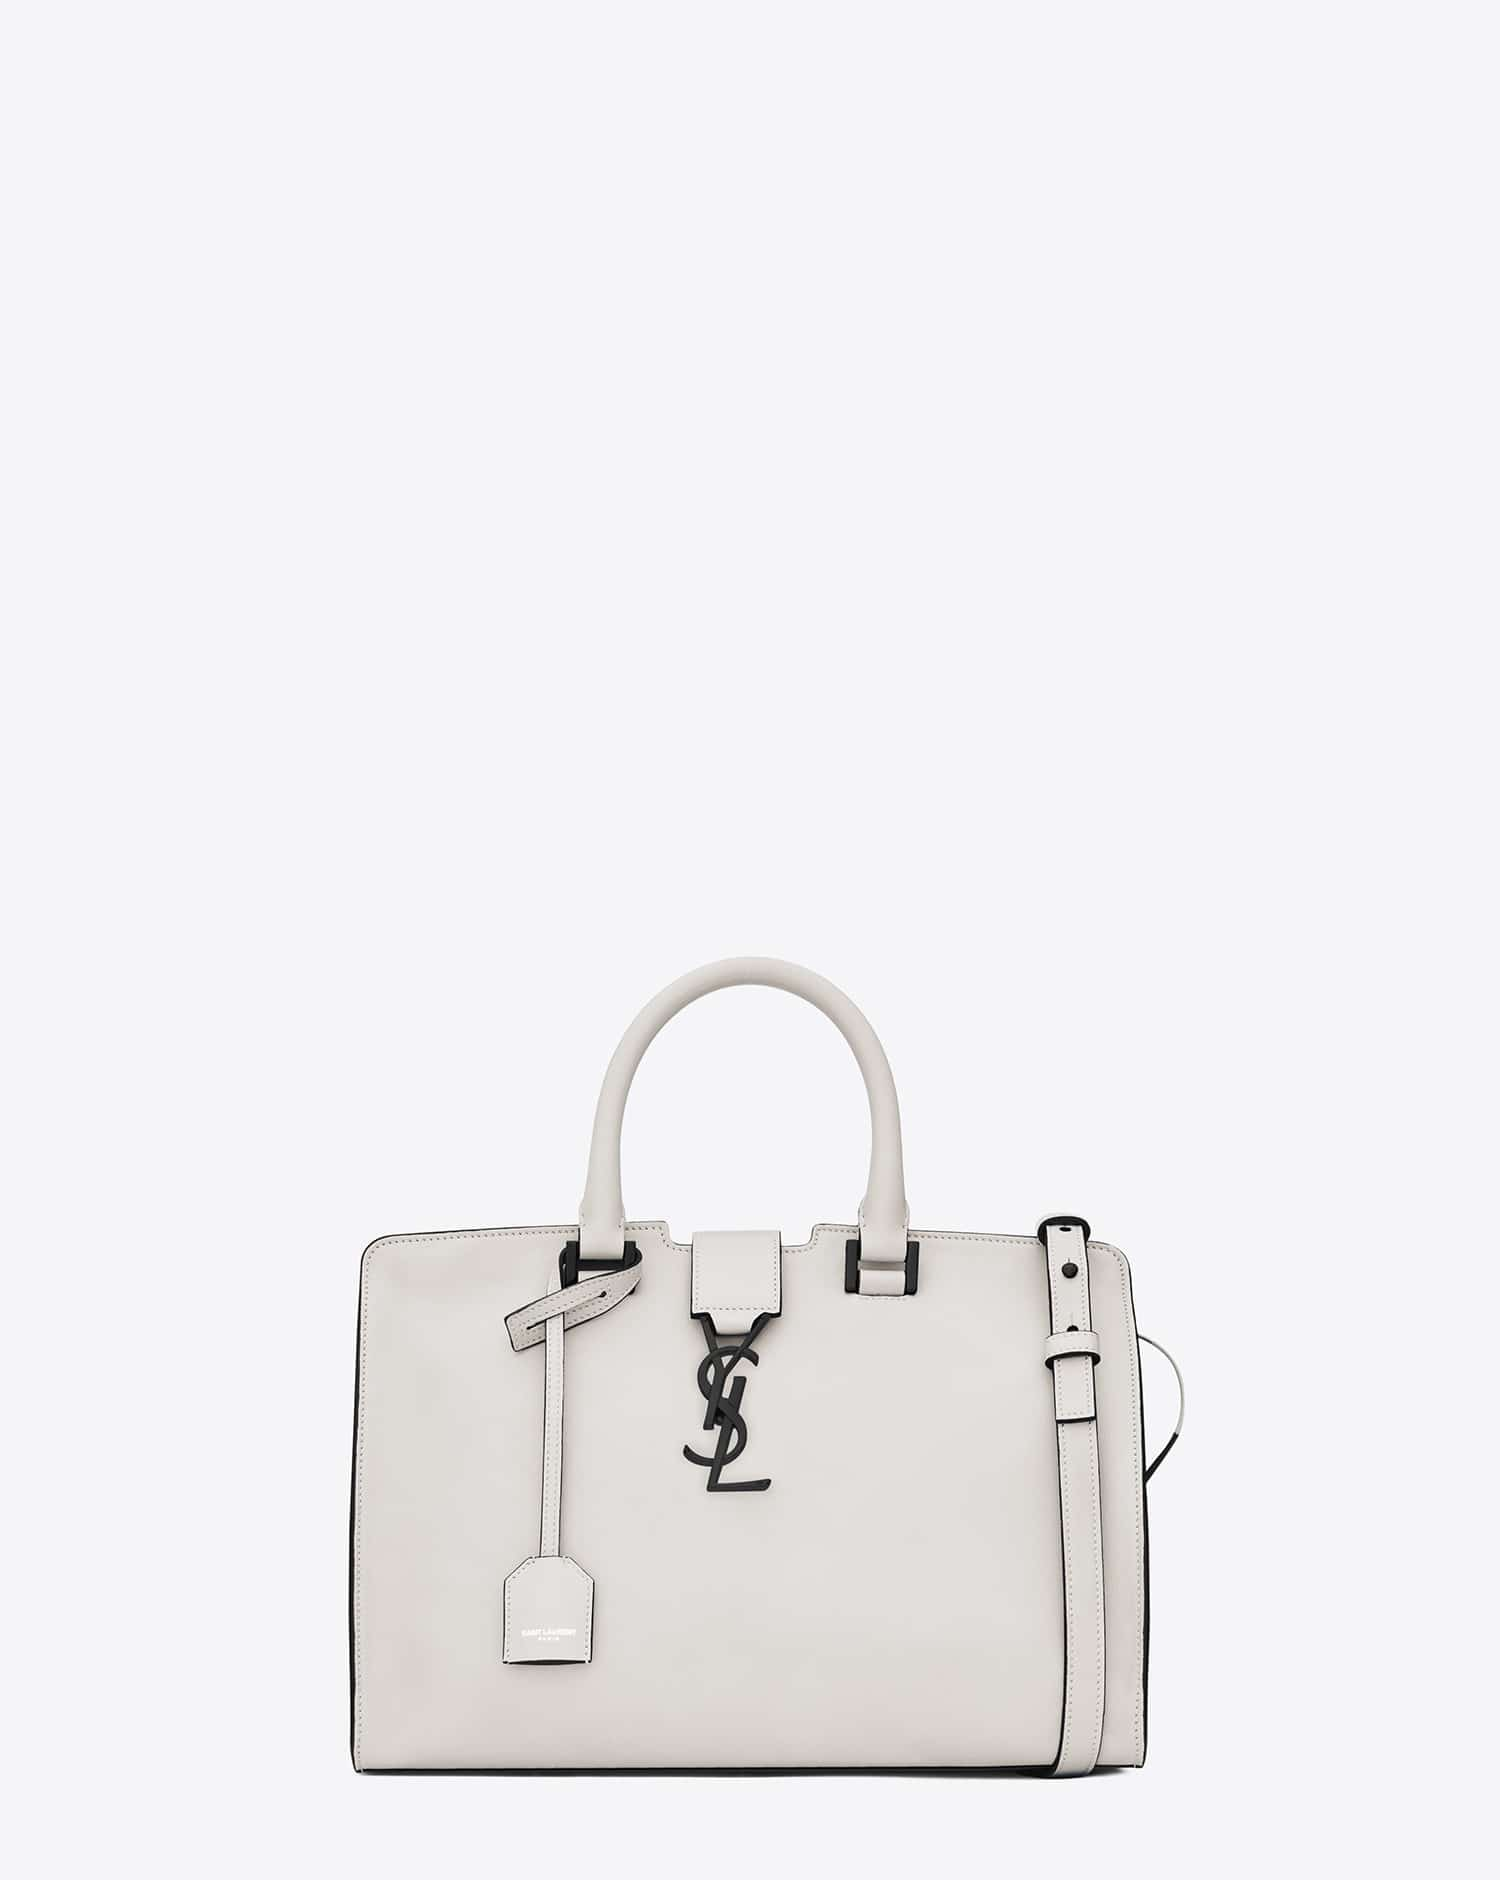 ysl bag sale - Saint Laurent Cruise 2016 Bag Collection | Spotted Fashion